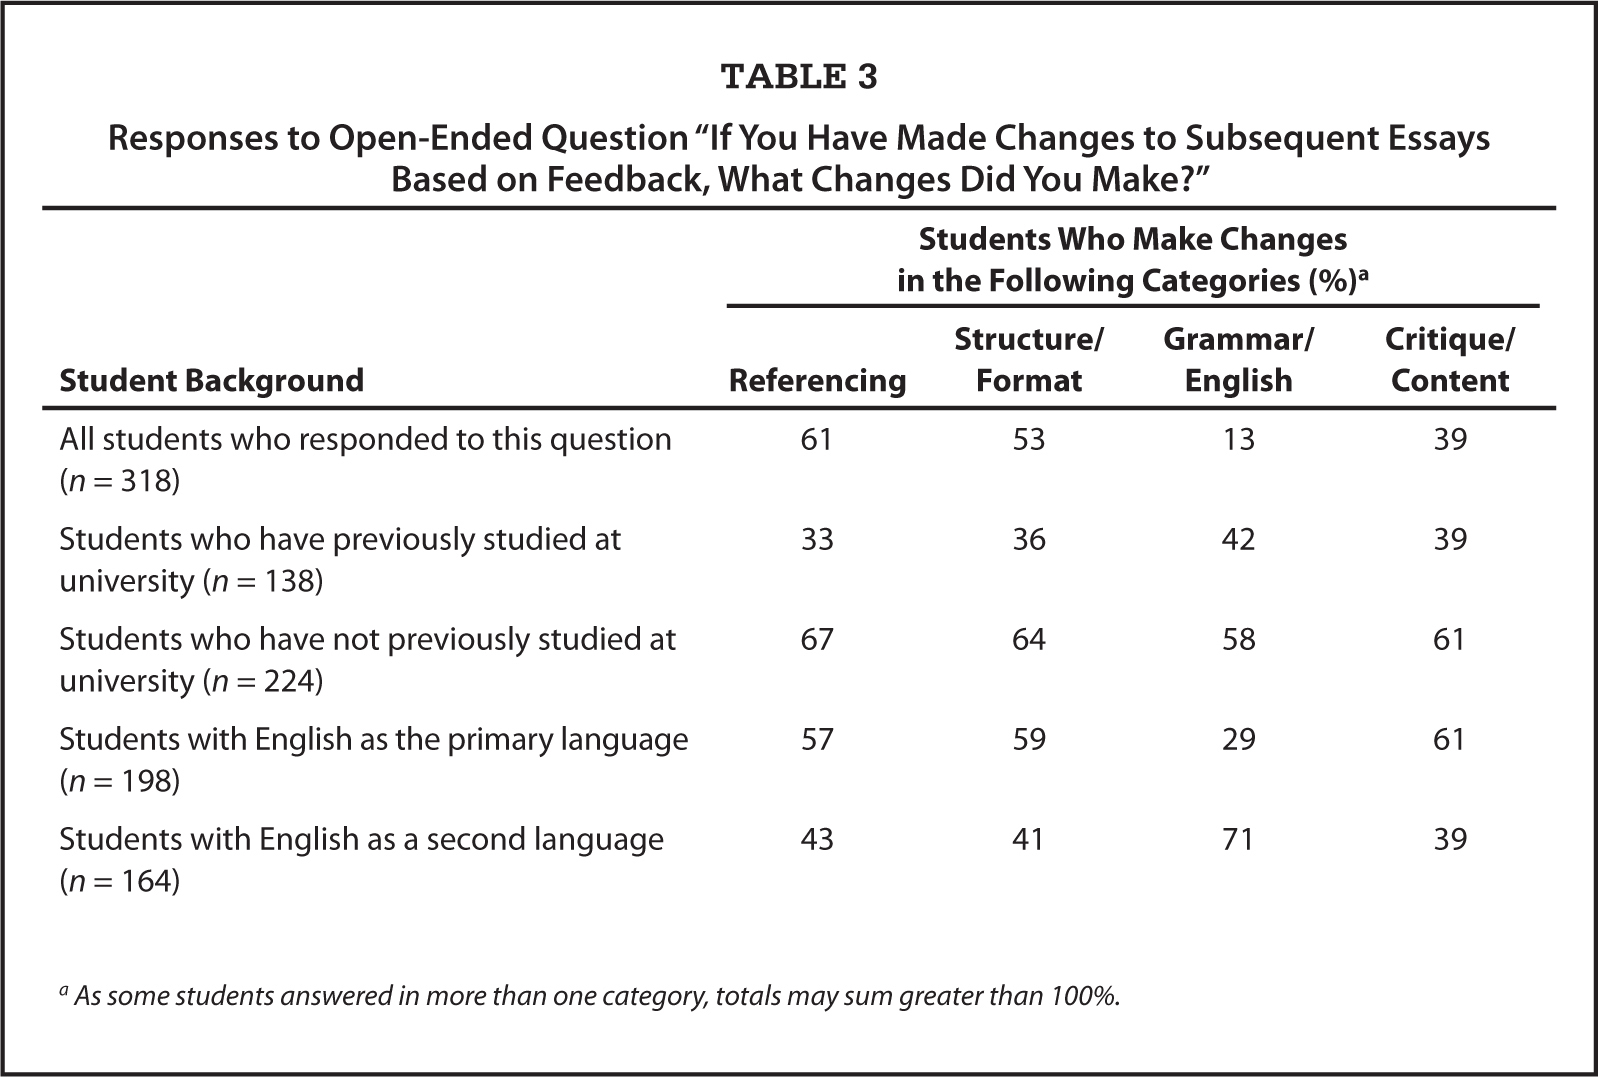 """Responses to Open-Ended Question """"If You Have Made Changes to Subsequent Essays Based on Feedback, What Changes Did You Make?"""""""